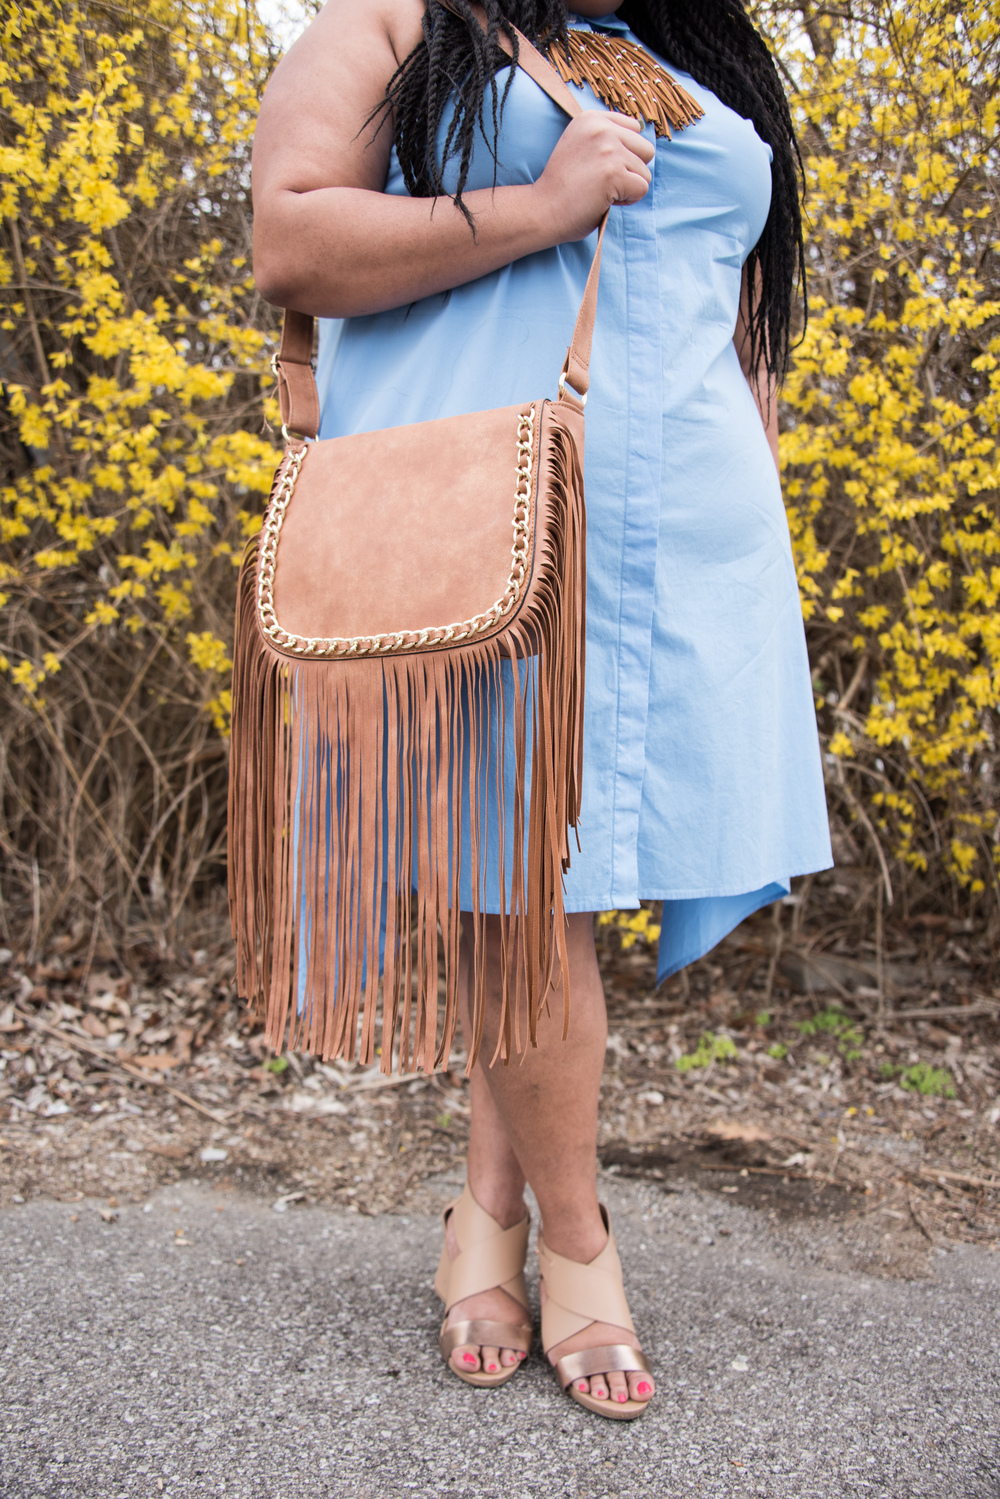 Neutral Fringe with metal accents! This ain't no Western baby ;-).